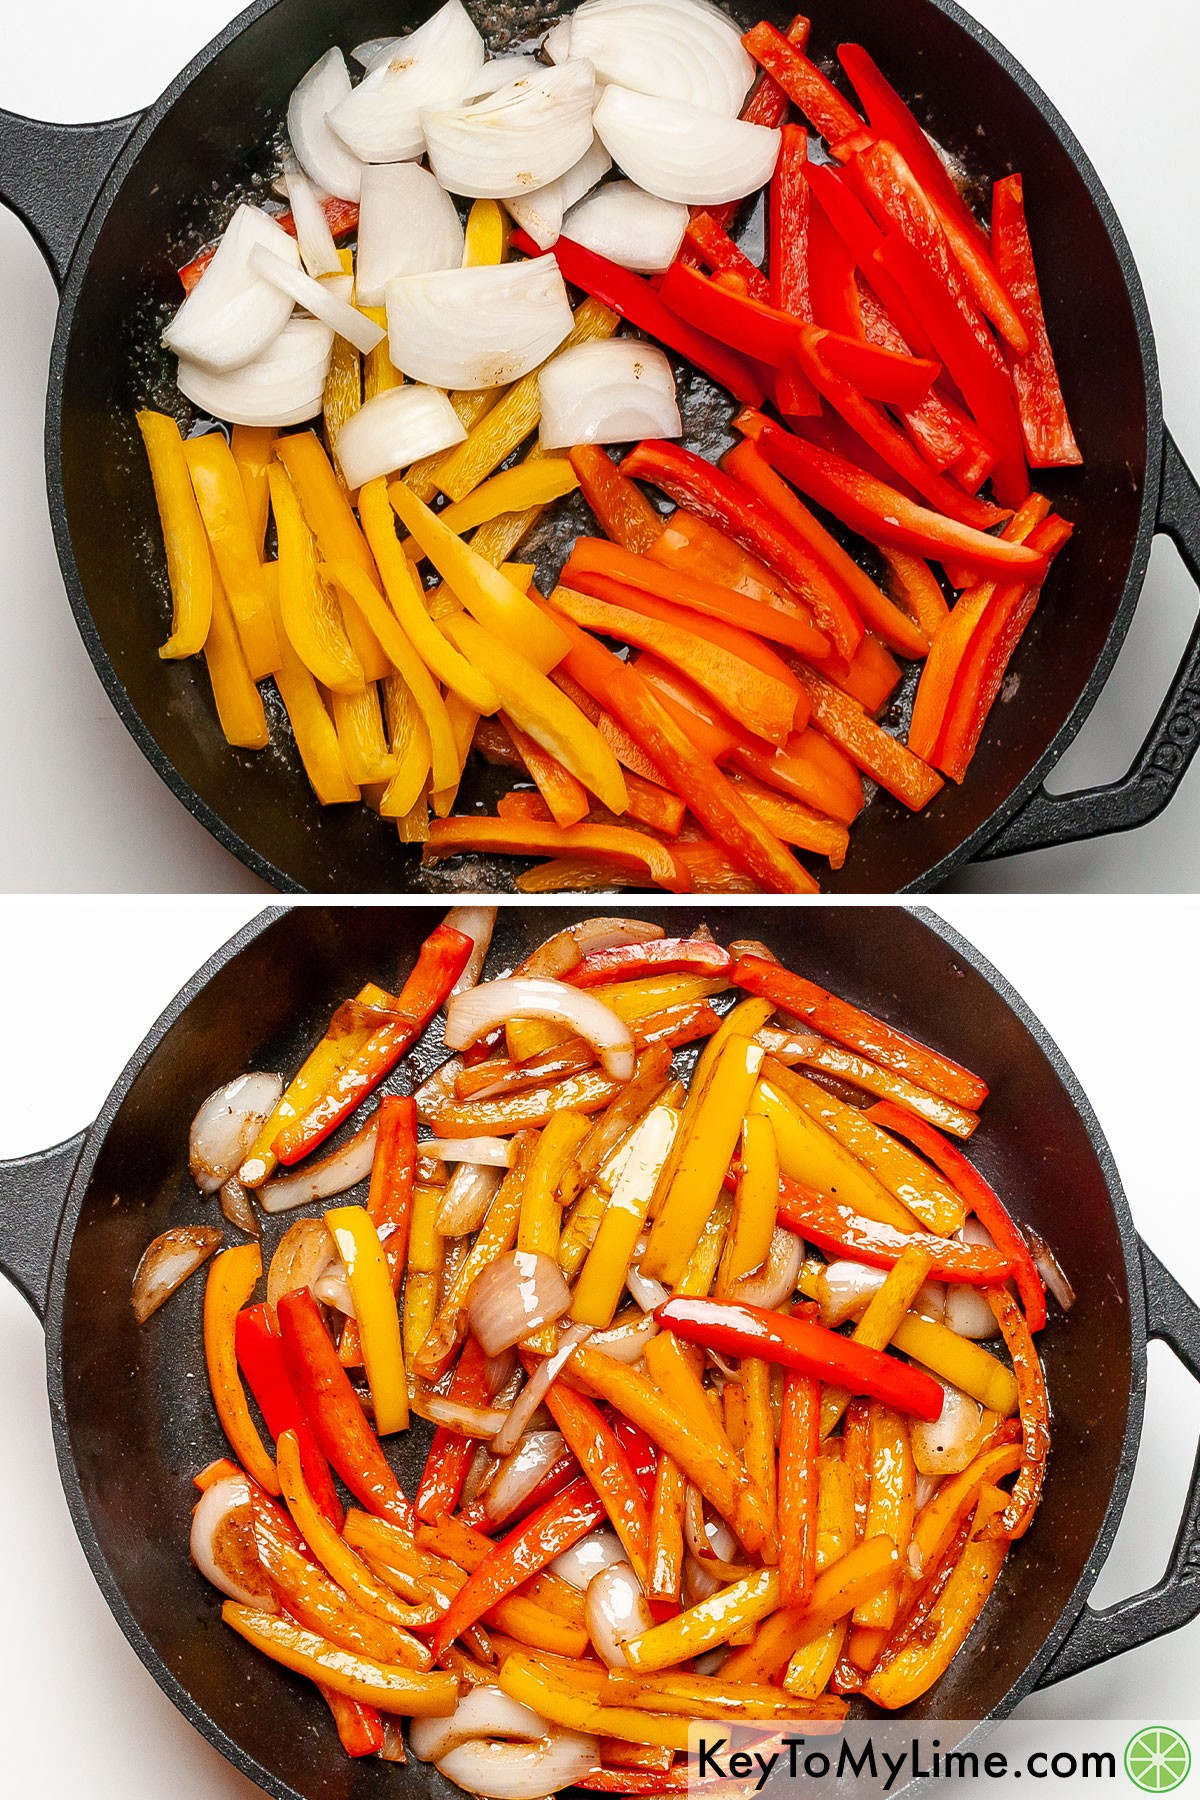 Bell peppers and onion before and after sauteing.